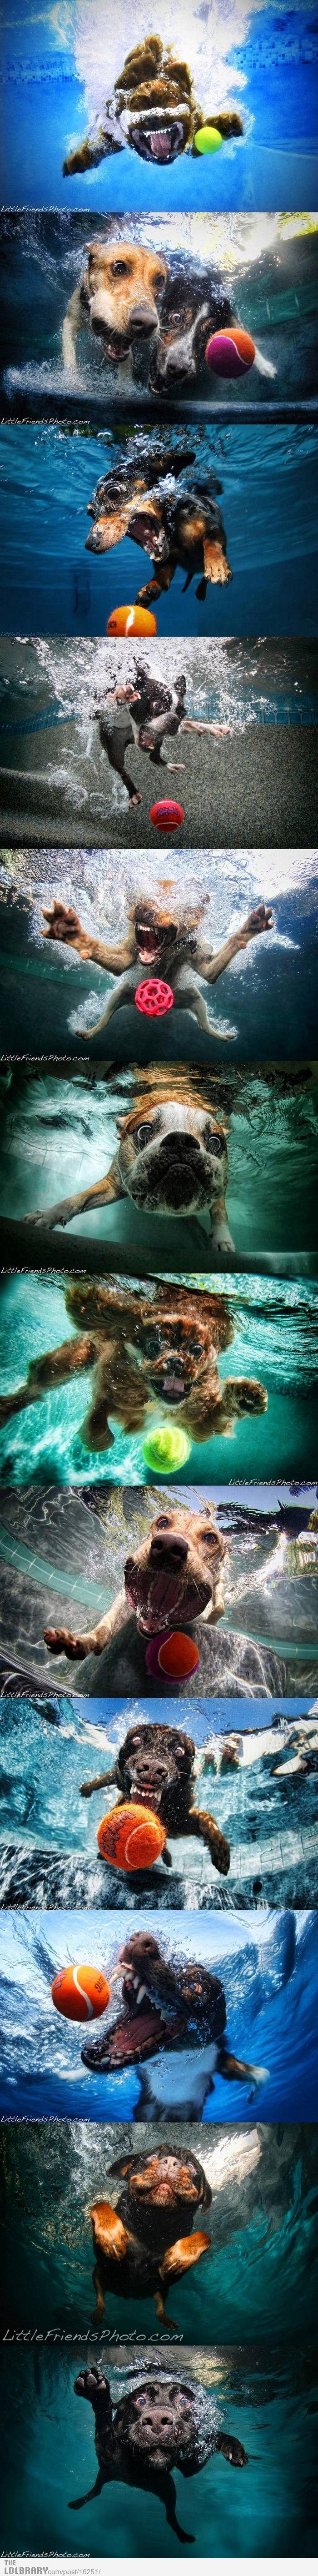 Dogs and fetching balls in the water......cool shots!